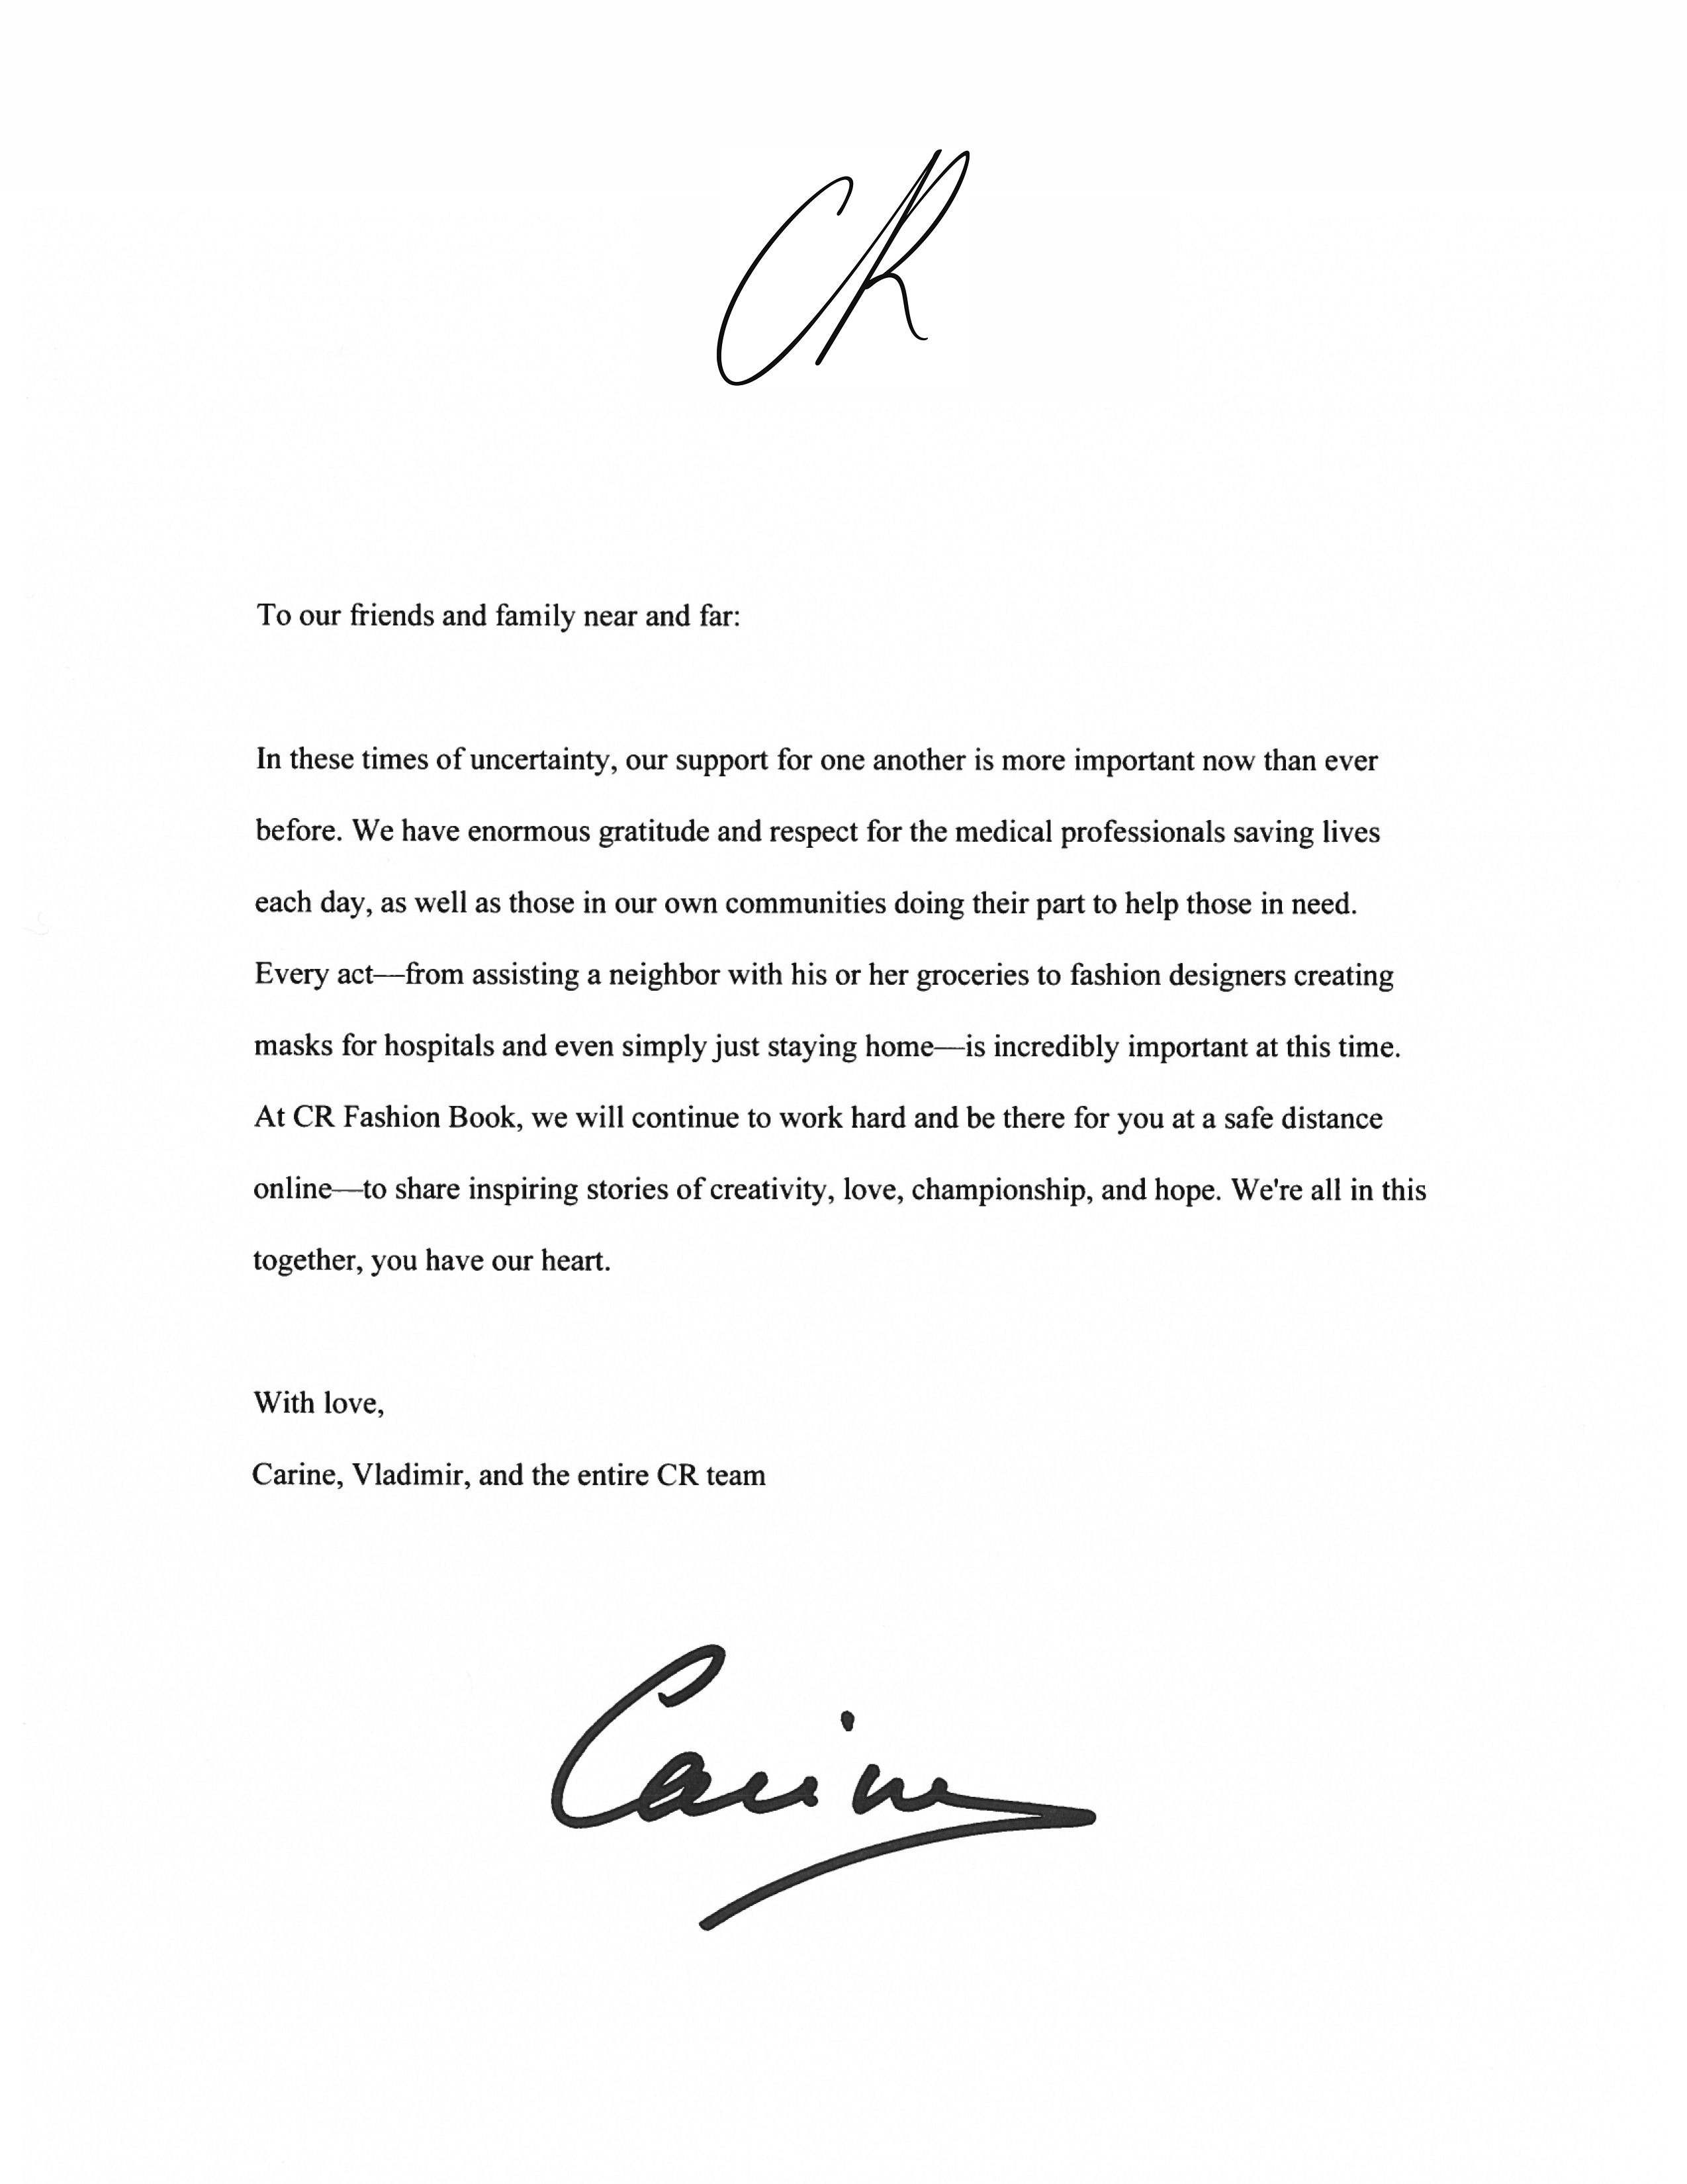 Carine Roifeld Covid 19 Corona Cr Fashion Book A Letter From Carine